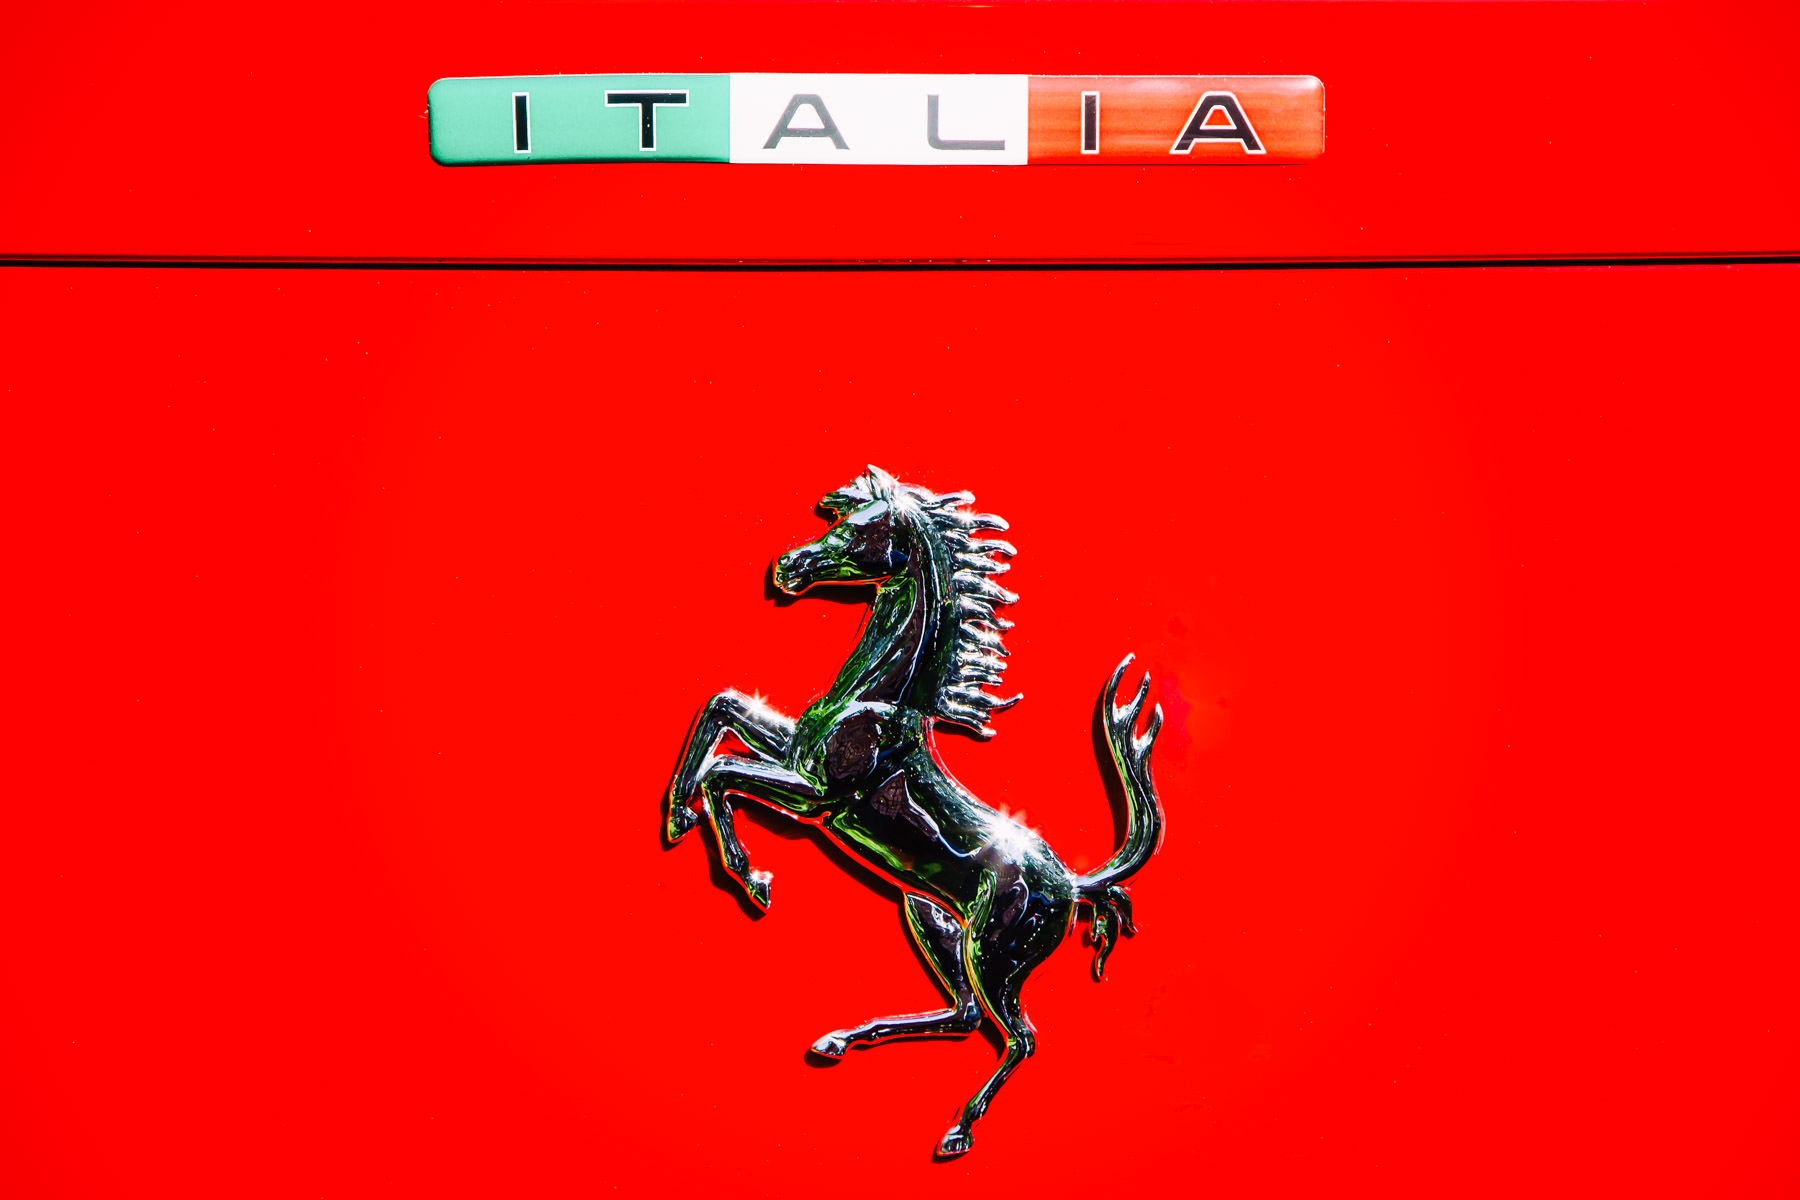 Ferrari's iconic Prancing Stallion, or Cavallino Rampante, as seen on a Ferrari 328 GTB at Dallas' Cooper Aerobics Center's Autos in the Park event.